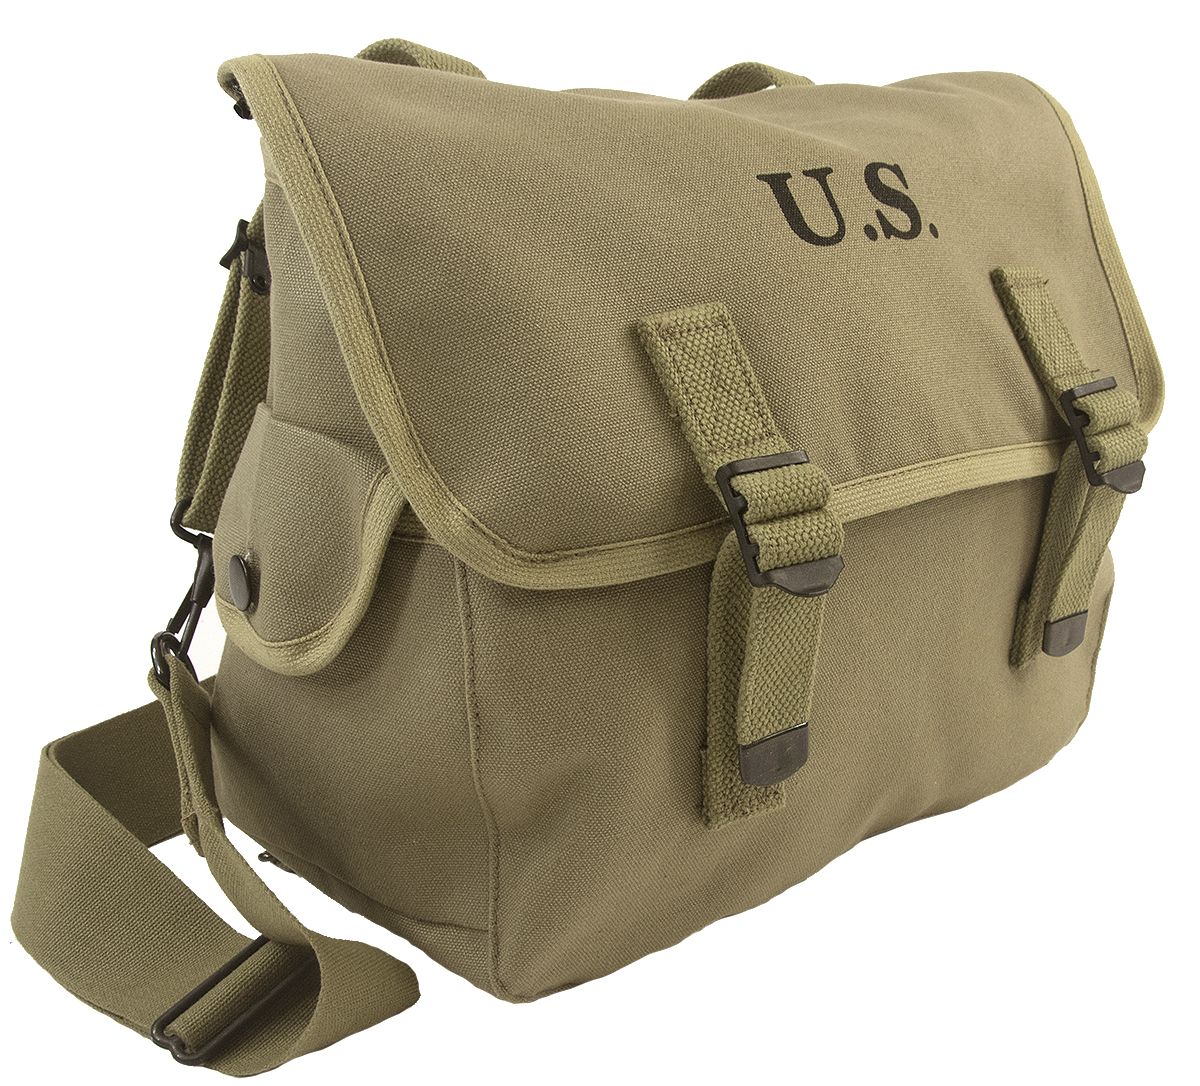 Musette Bag, Made in USA